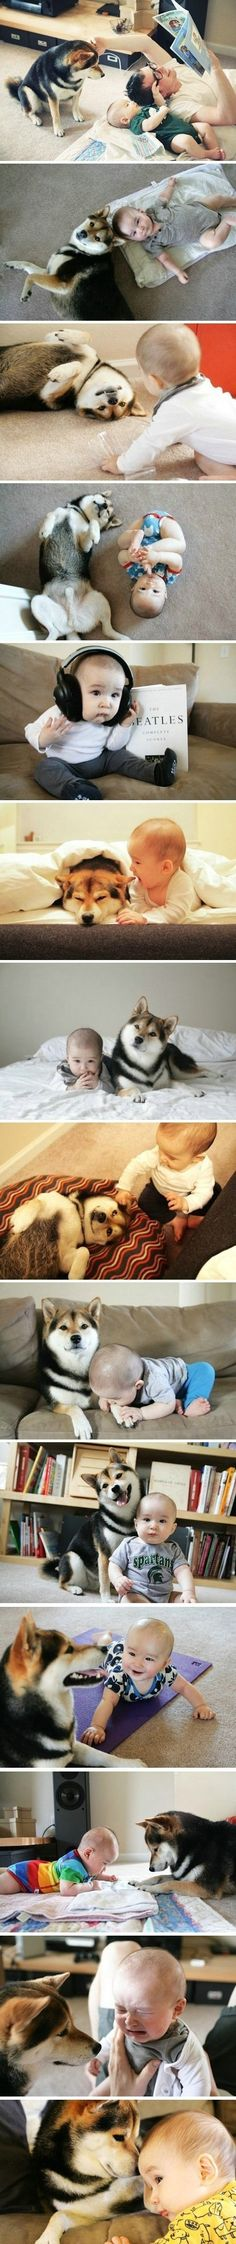 Someone loves his baby. Look at this and tell animals don't have emotions.